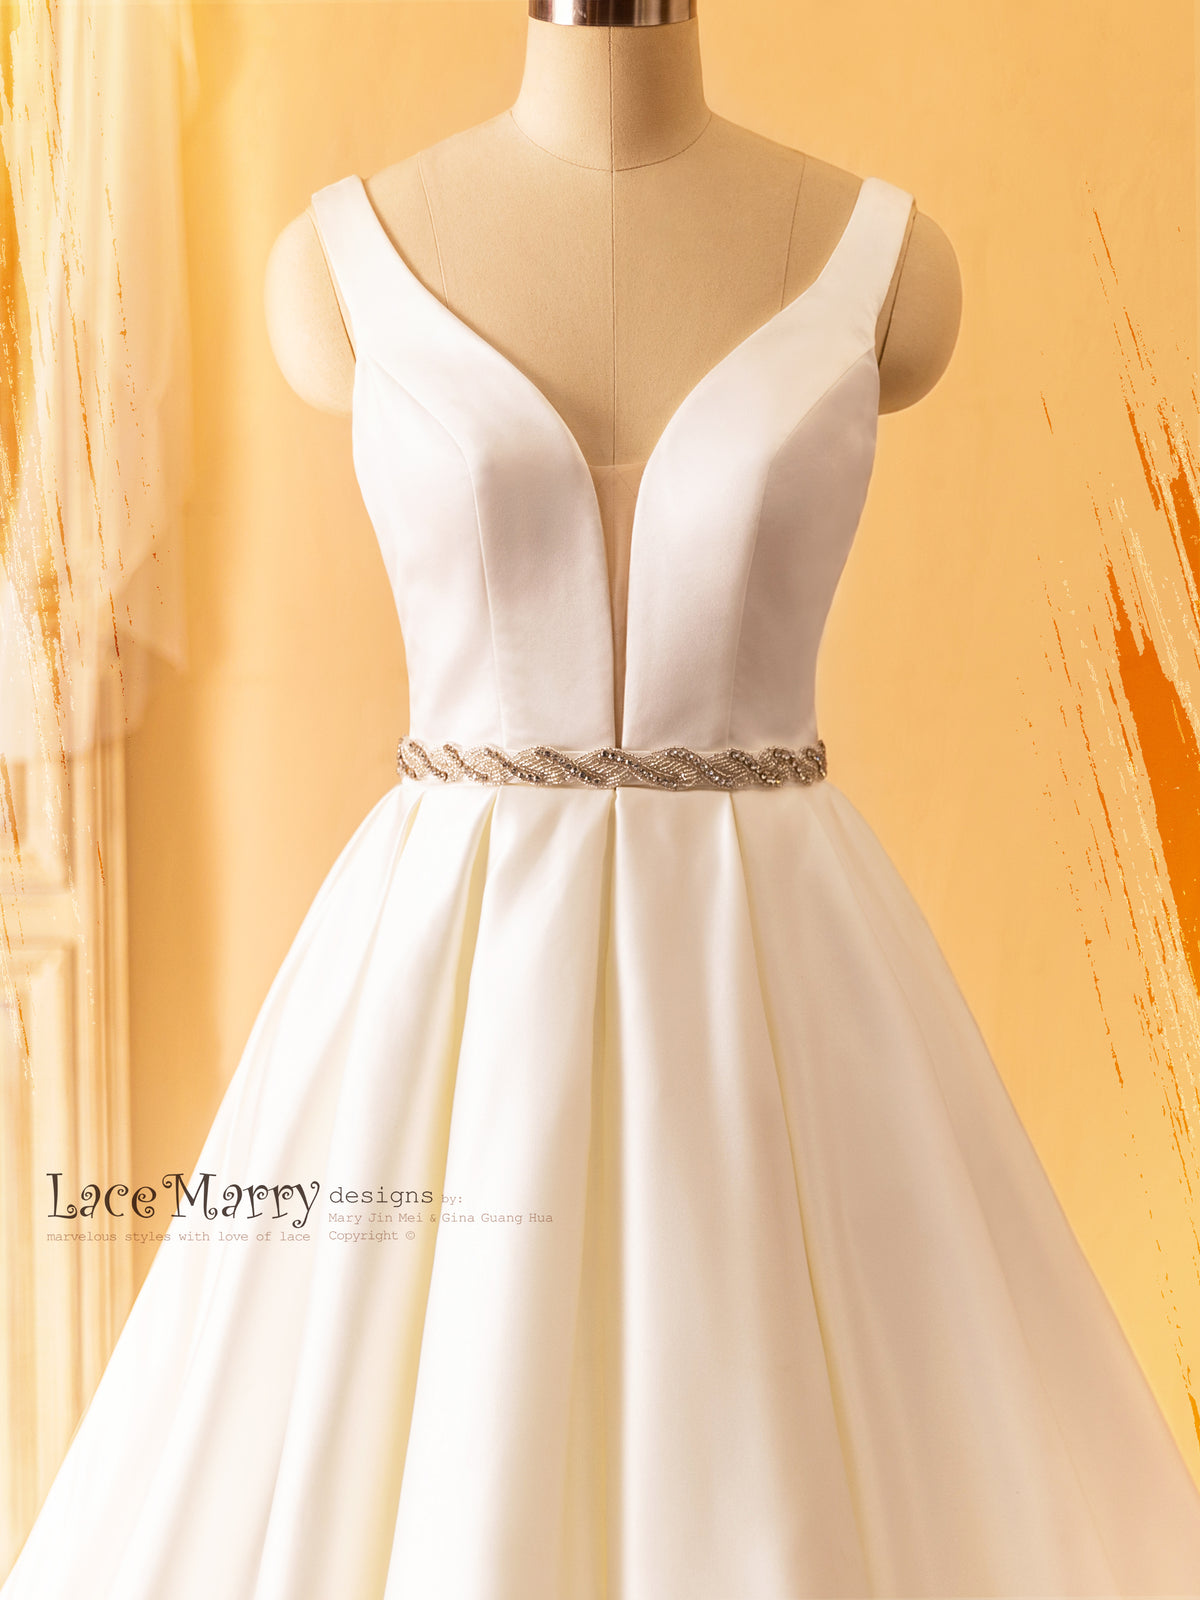 Plunge Neckline Wedding Dress in Plain Design